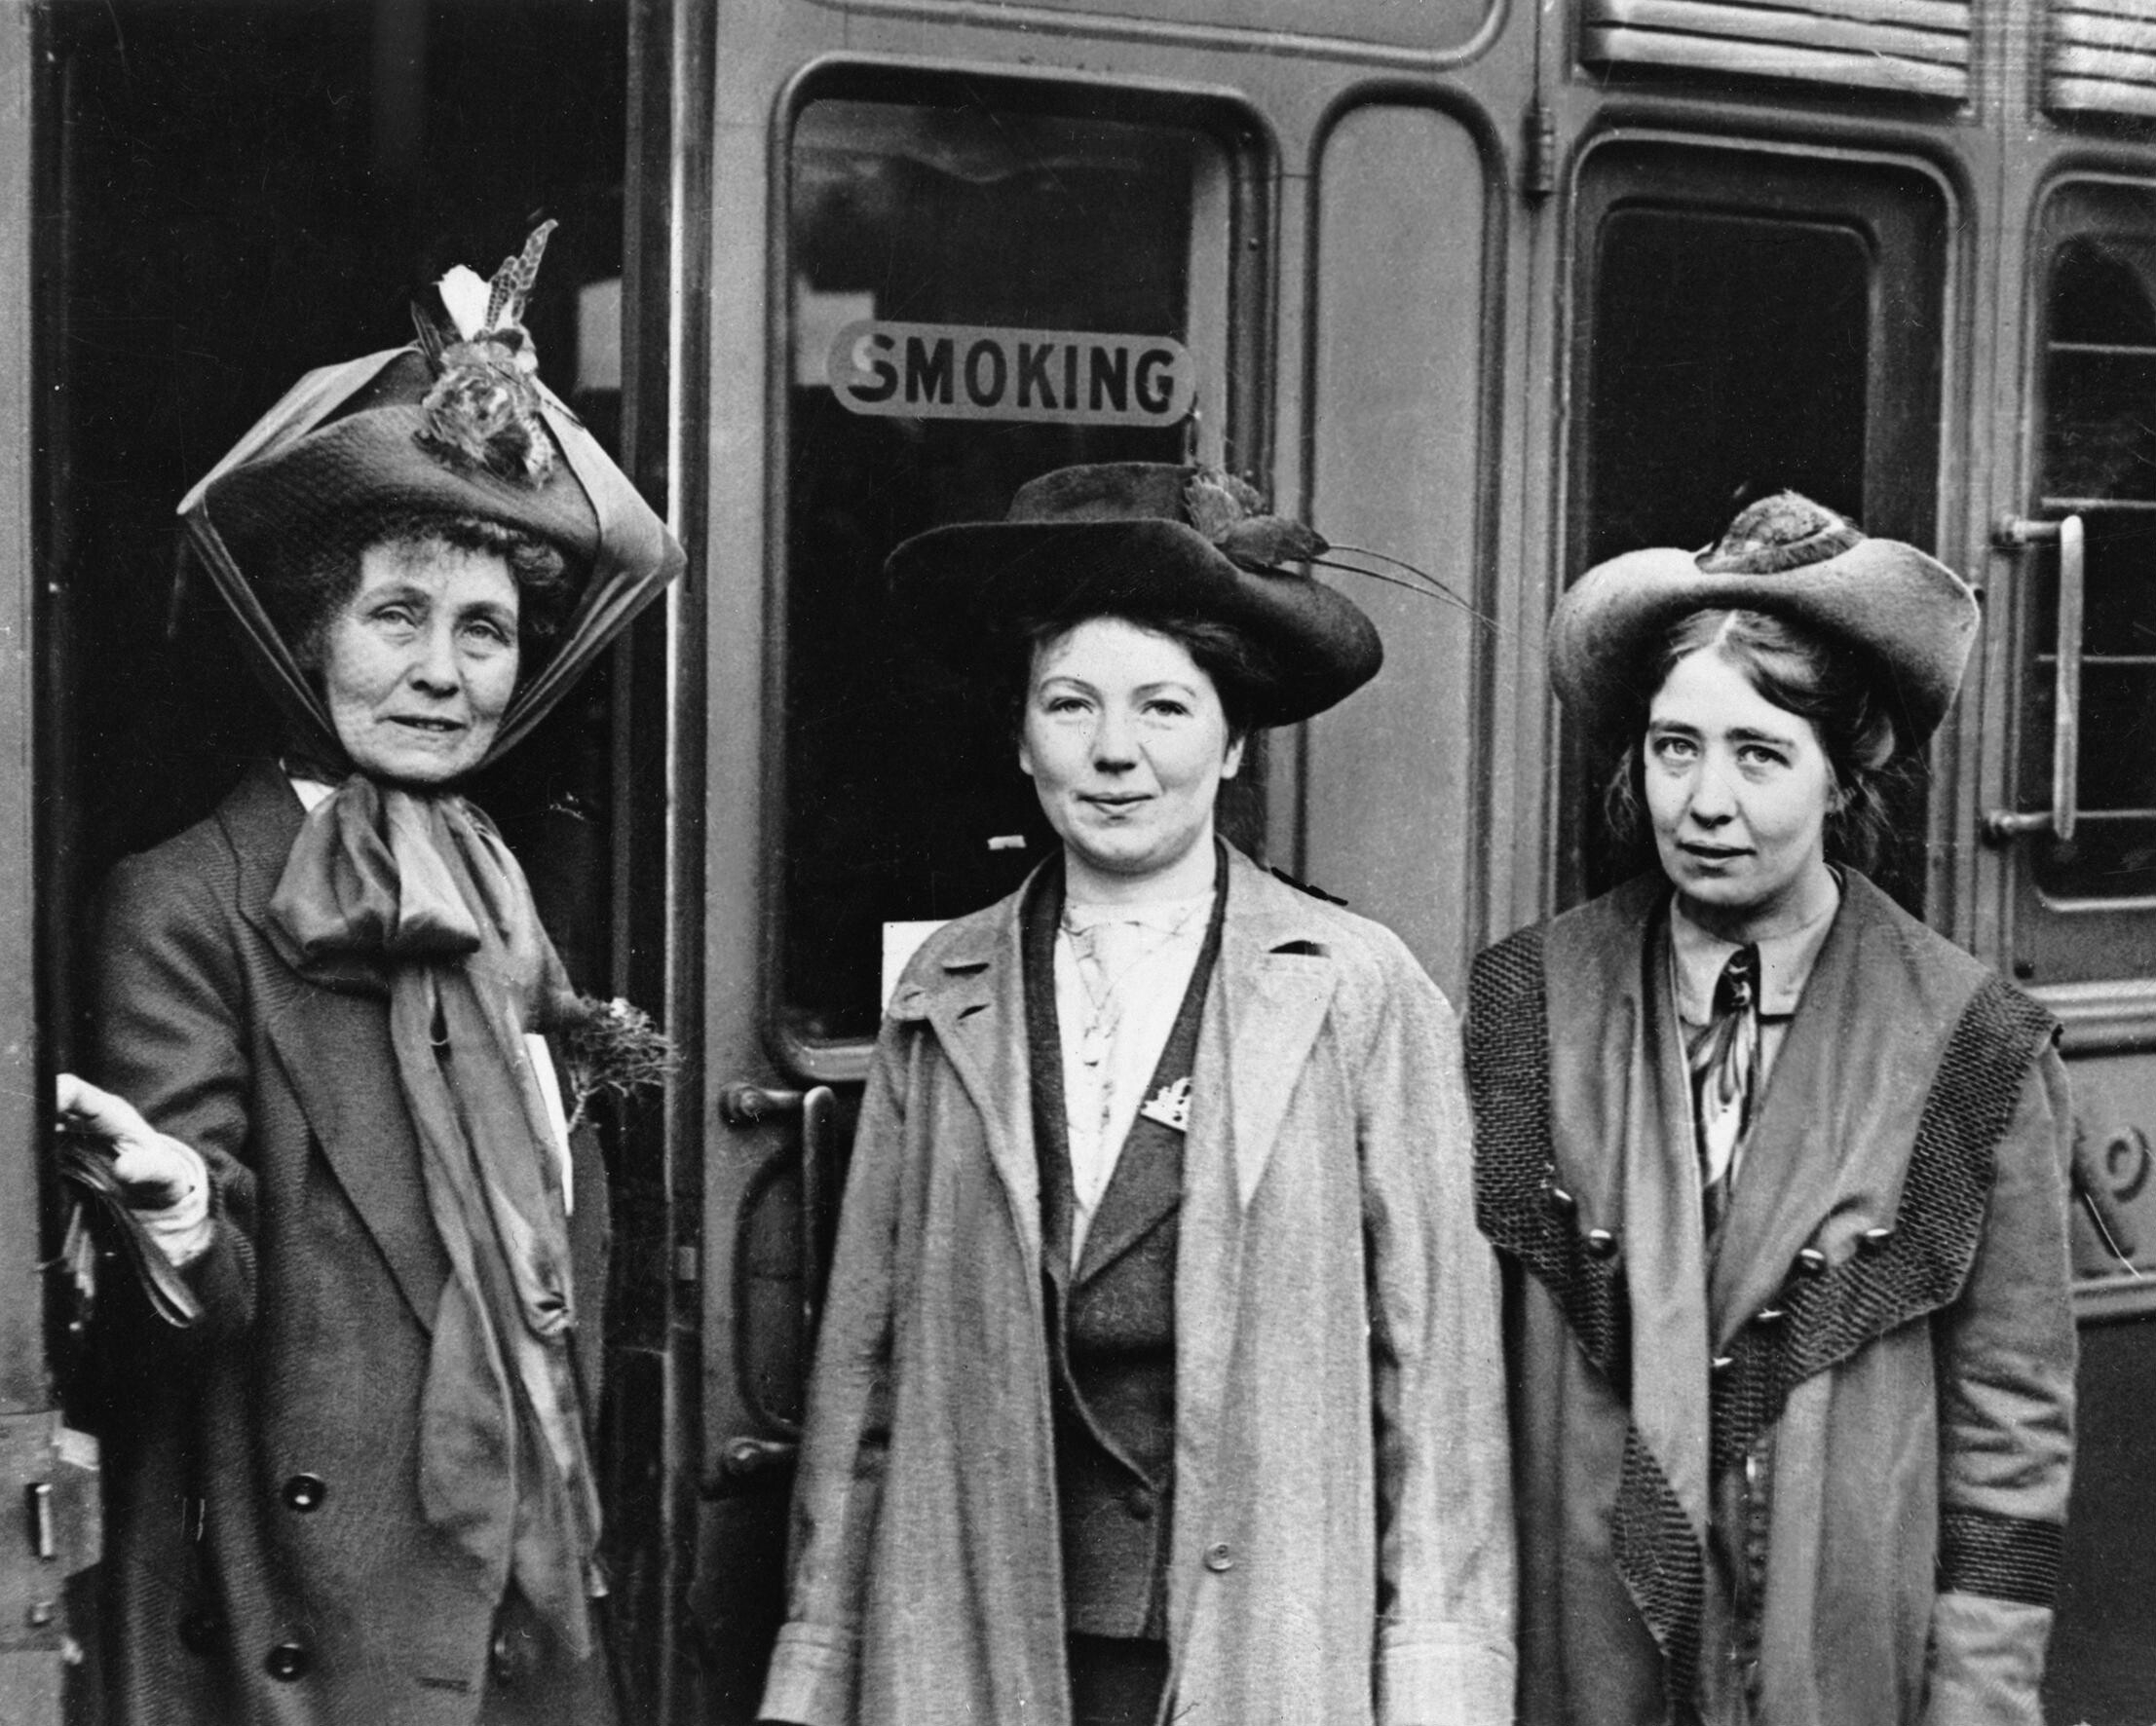 Women's vote: 100 years and a long way to go